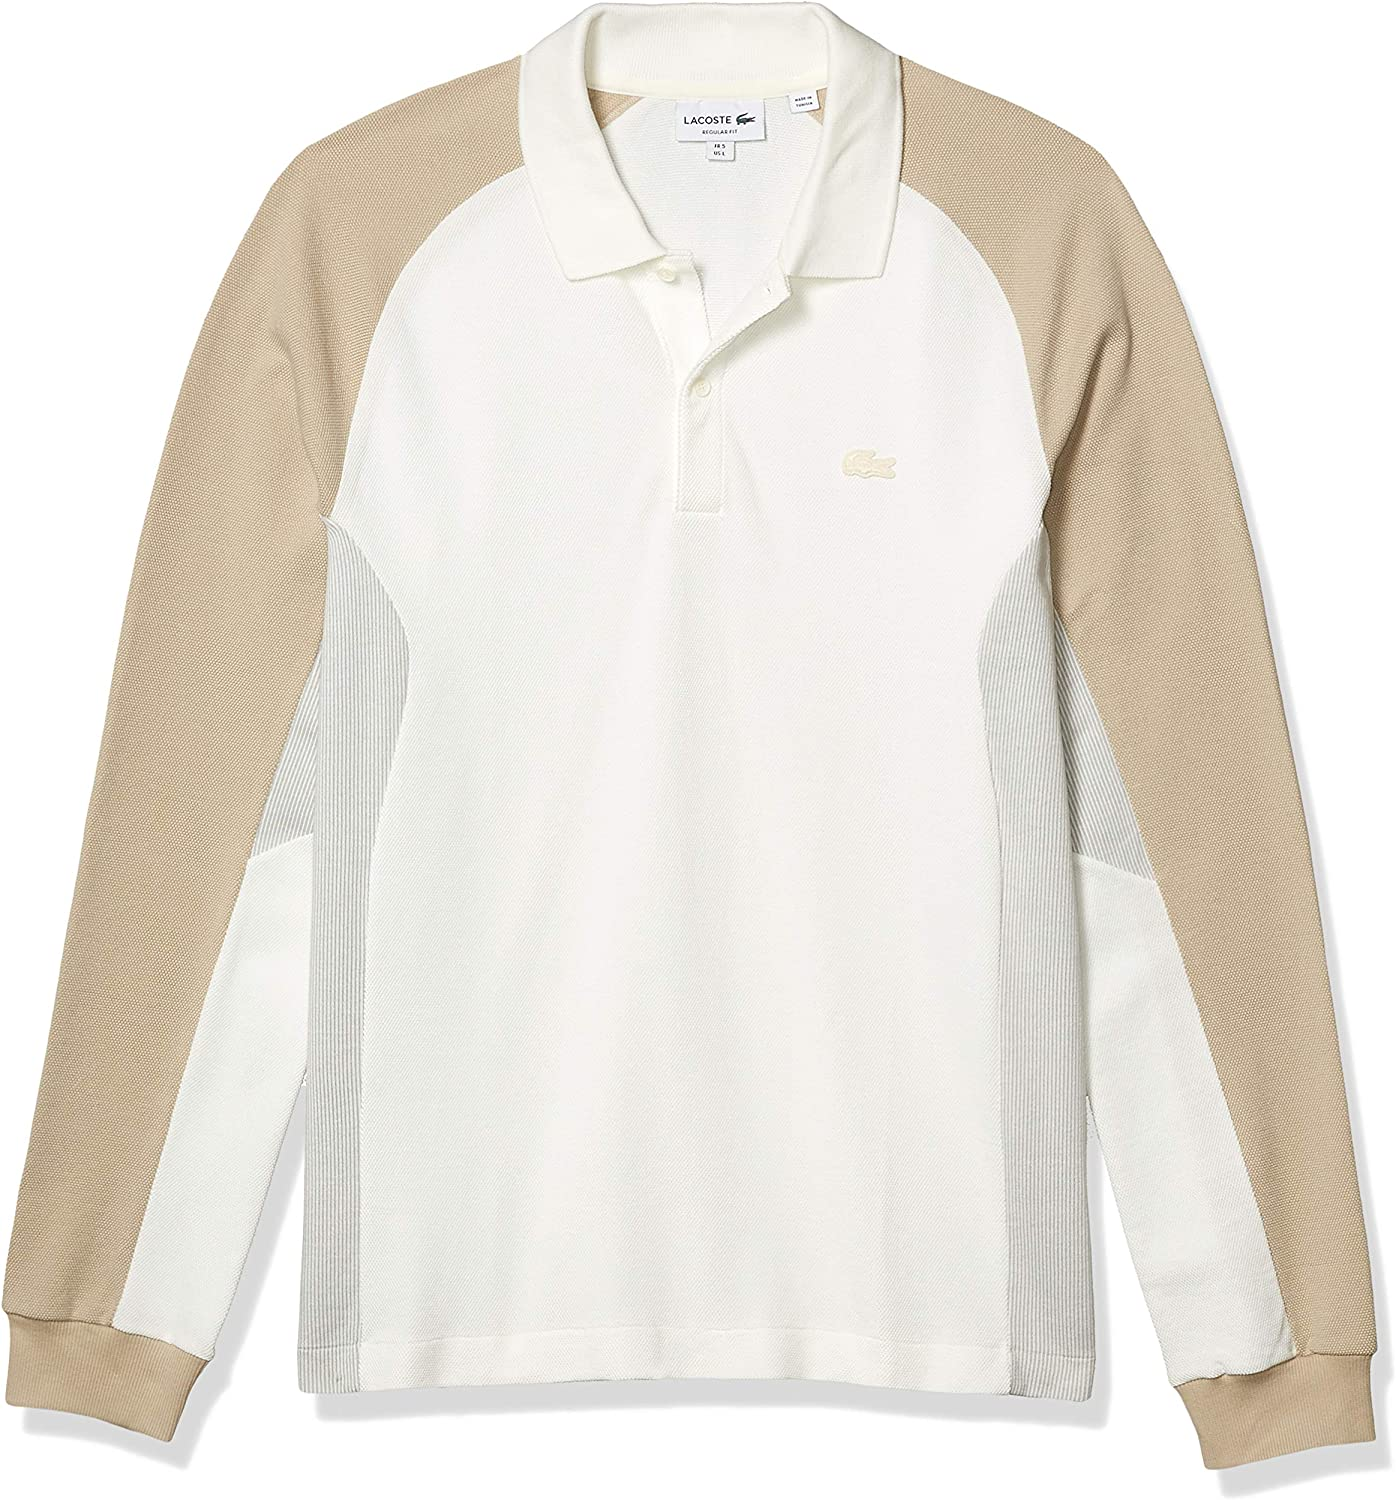 Lacoste Men's Long Sleeve Motion Quick Dry Colorblock Polo Shirt